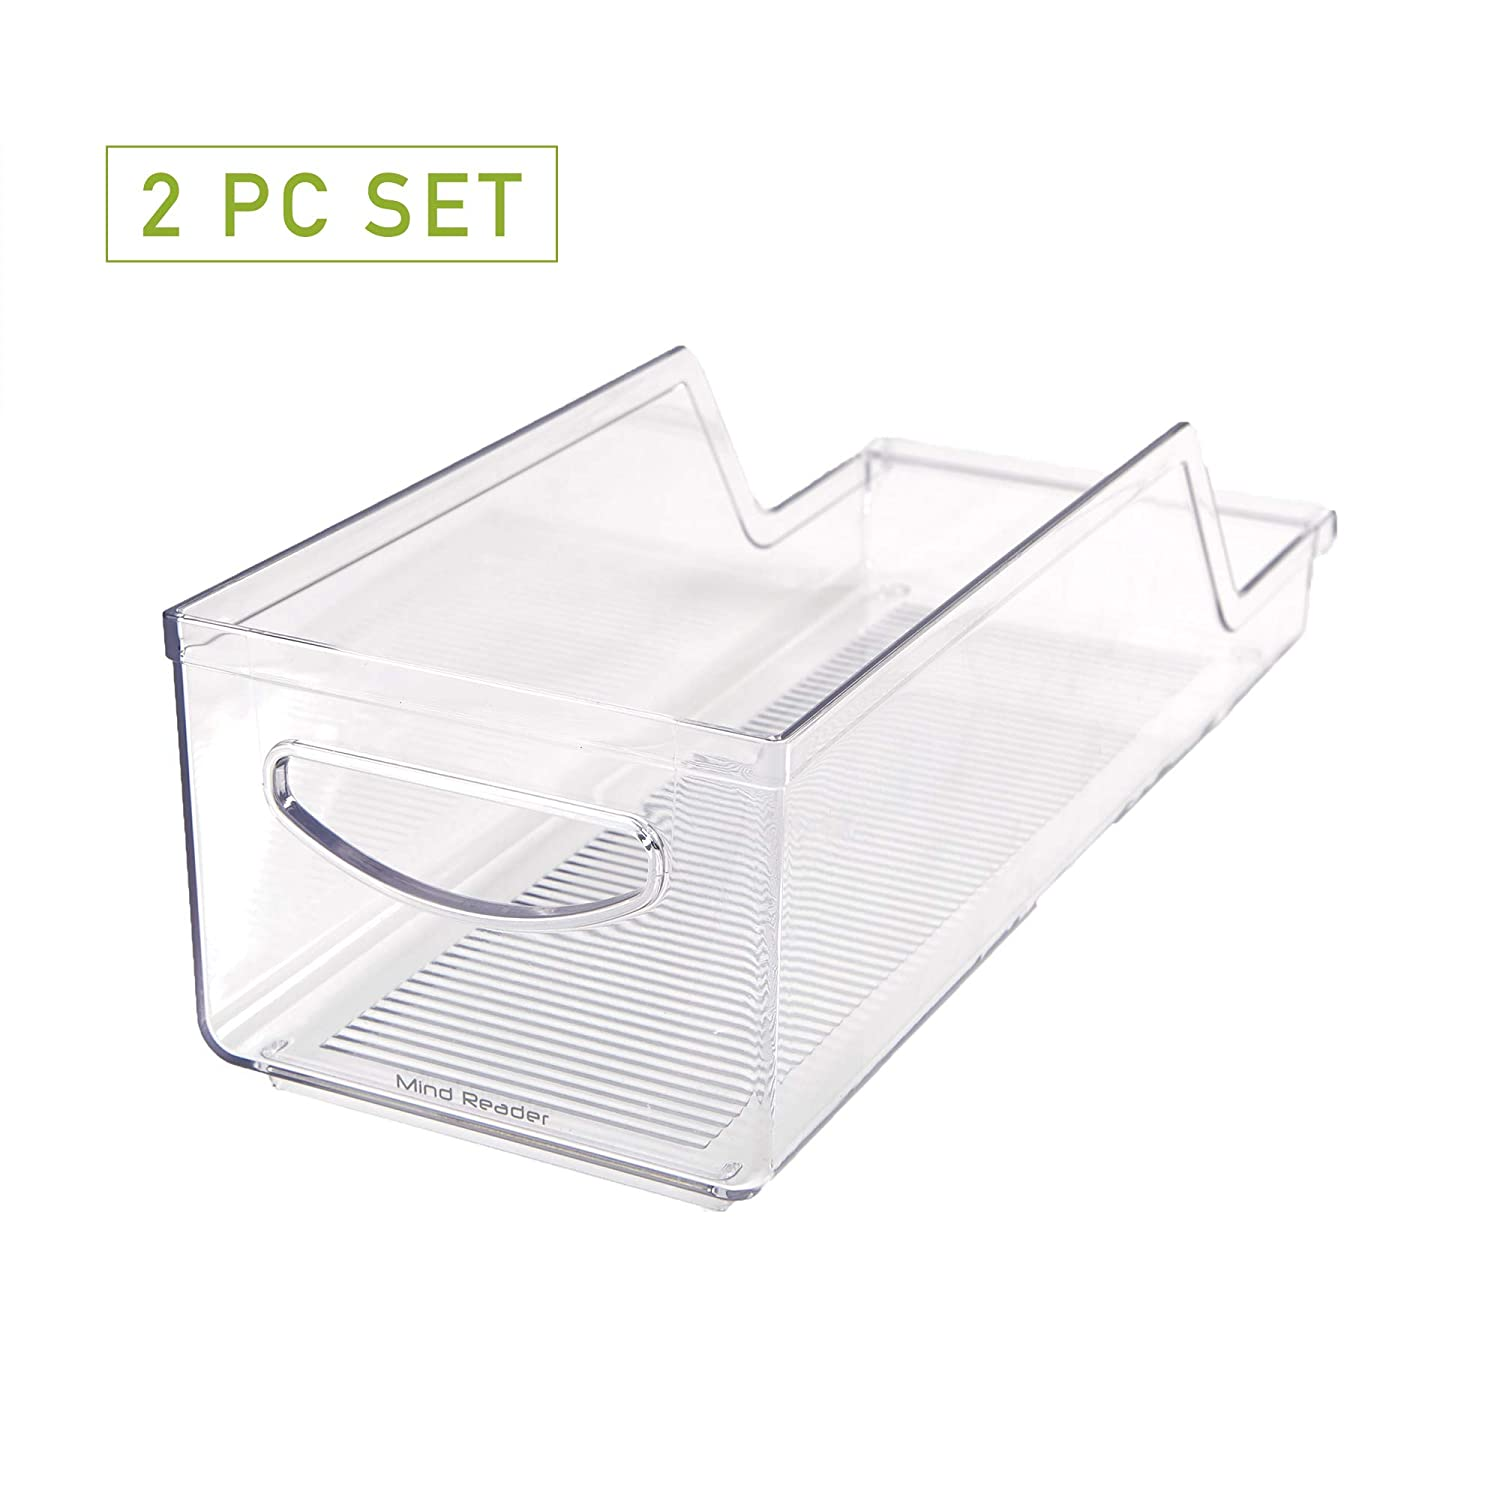 Mind Reader SCANORG2-CLR Stackable Can Storage Organizer for Fridge, Freezer, Countertop, Pantry, Clear, 2 Pack